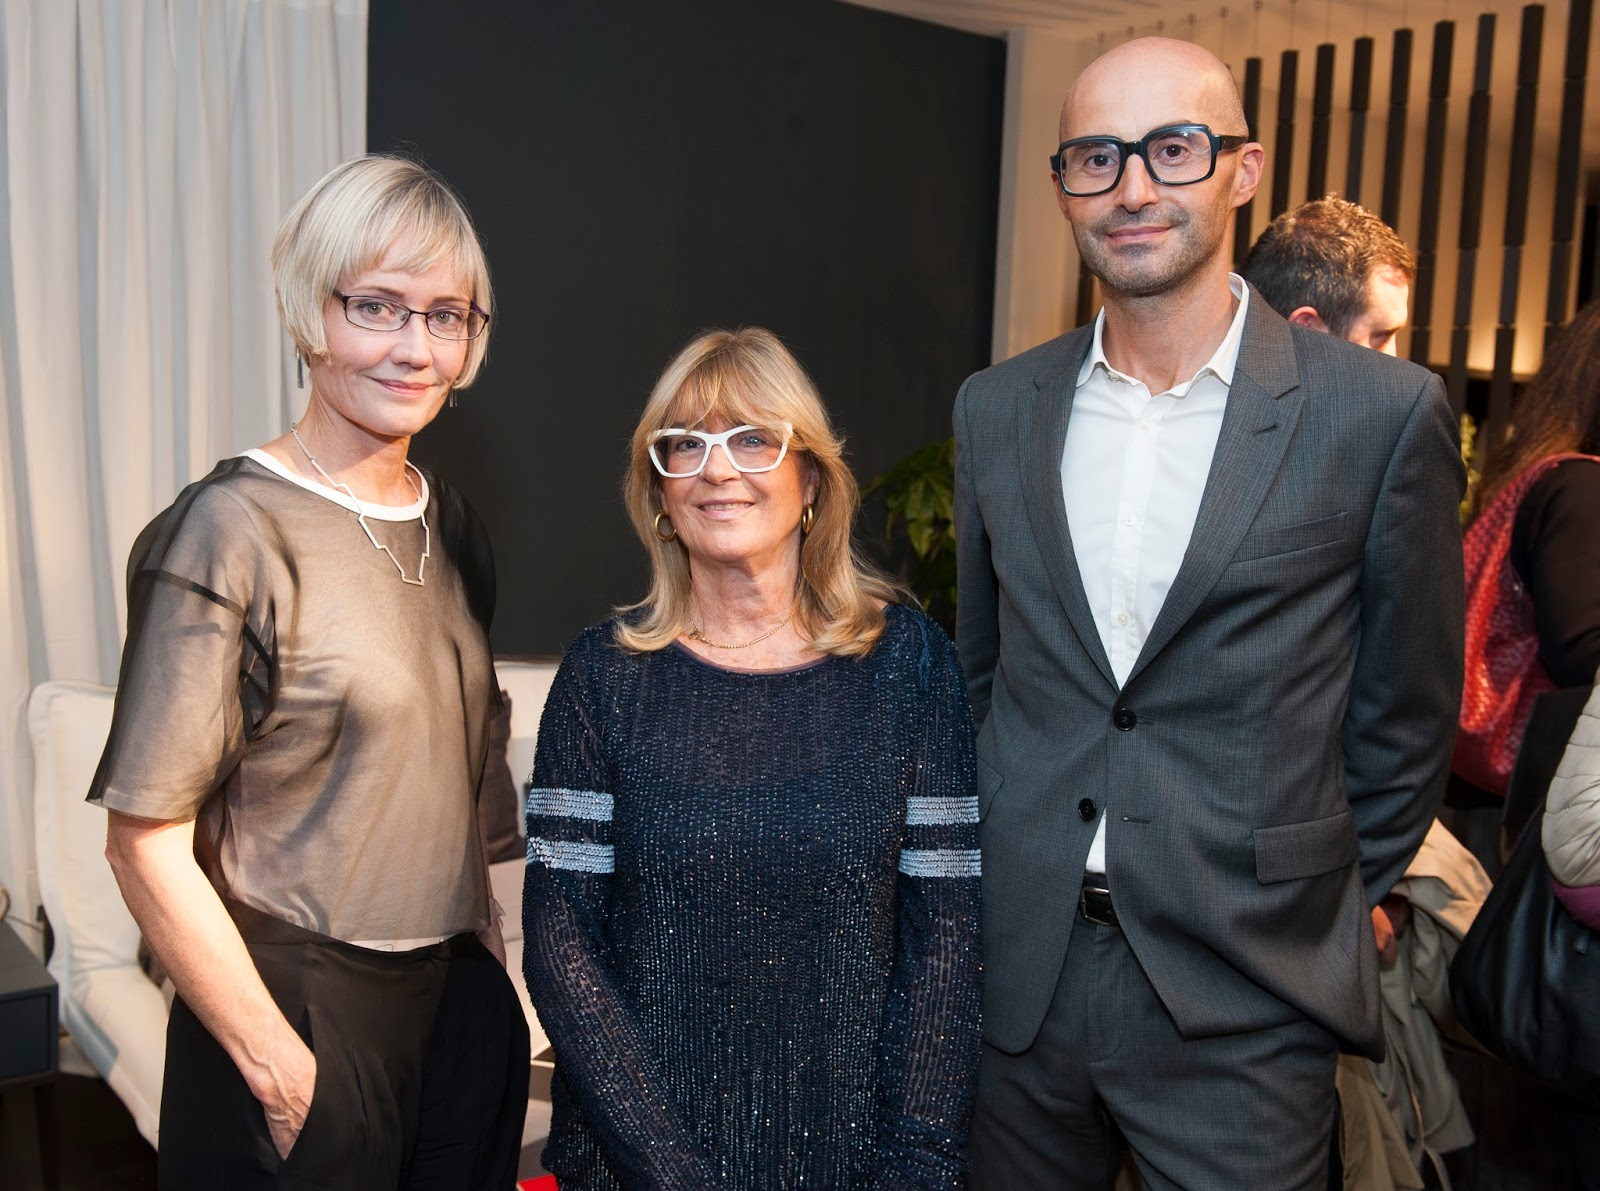 Alison Brooks with Gilda Bojardi and Michelangelo Giombini of INTERNI, Alison Brooks for Interni Aperitivos, London design festival